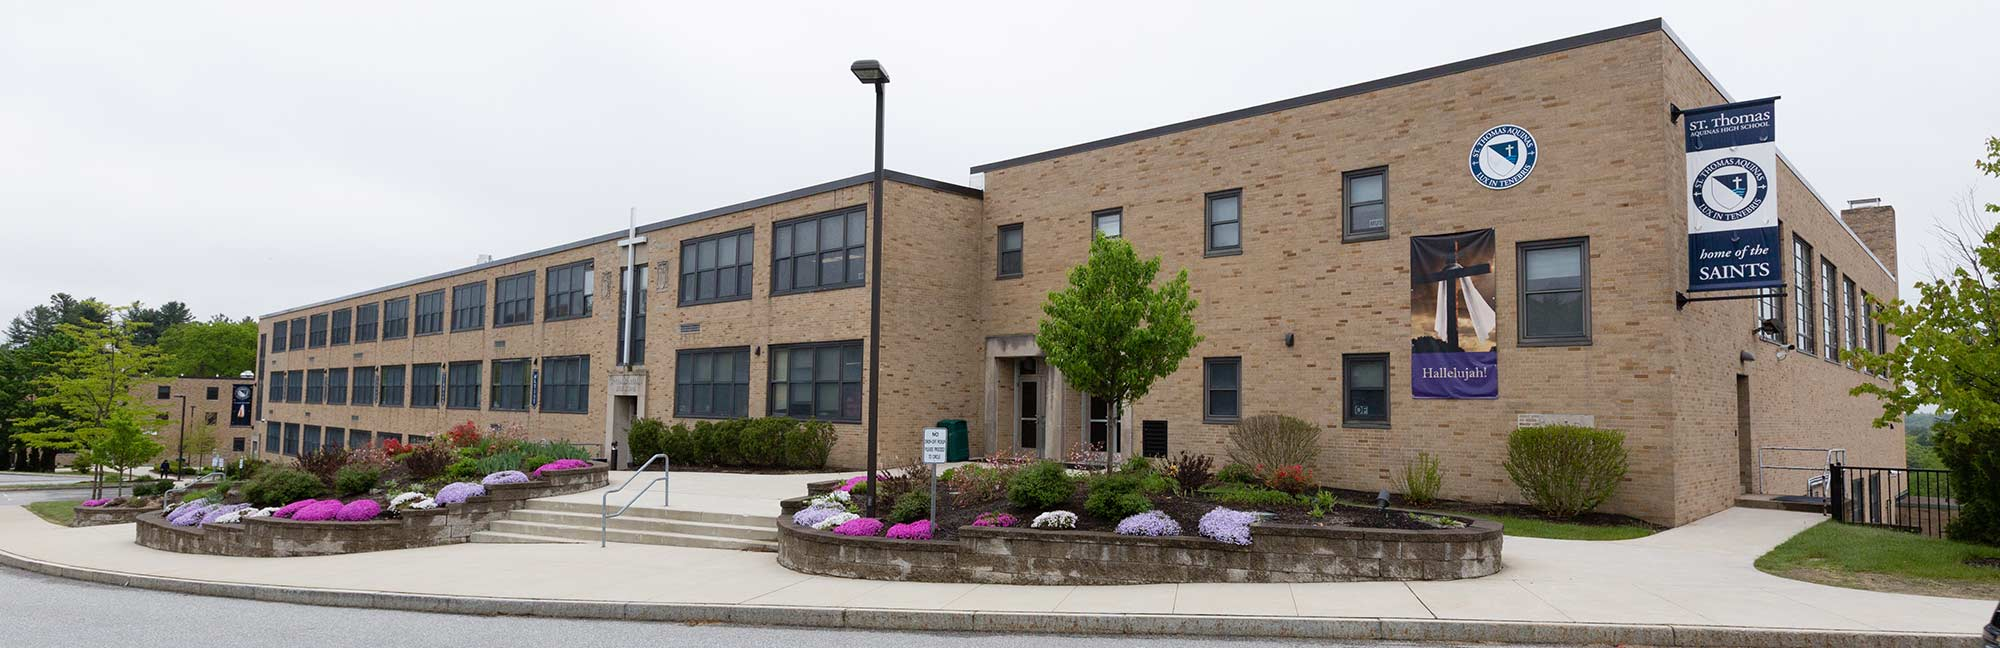 St  Thomas Aquinas High School in Dover, NH - Niche